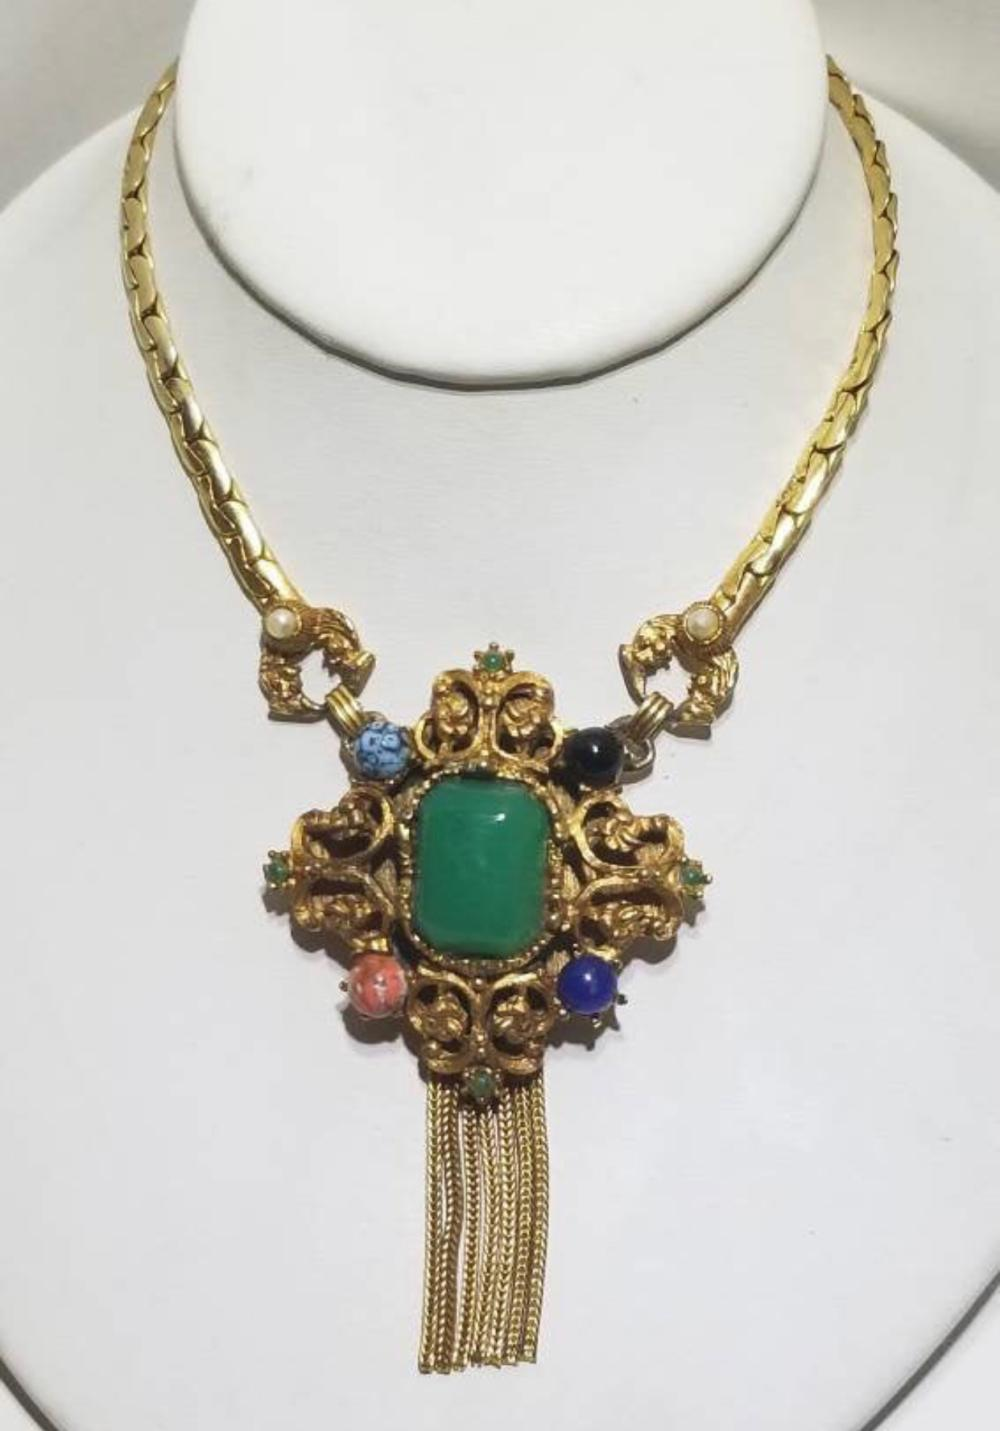 Antique / Vintage Fine Jewelry, Costume Jewelry, Bags, Accessories, Antiques & Collectibles